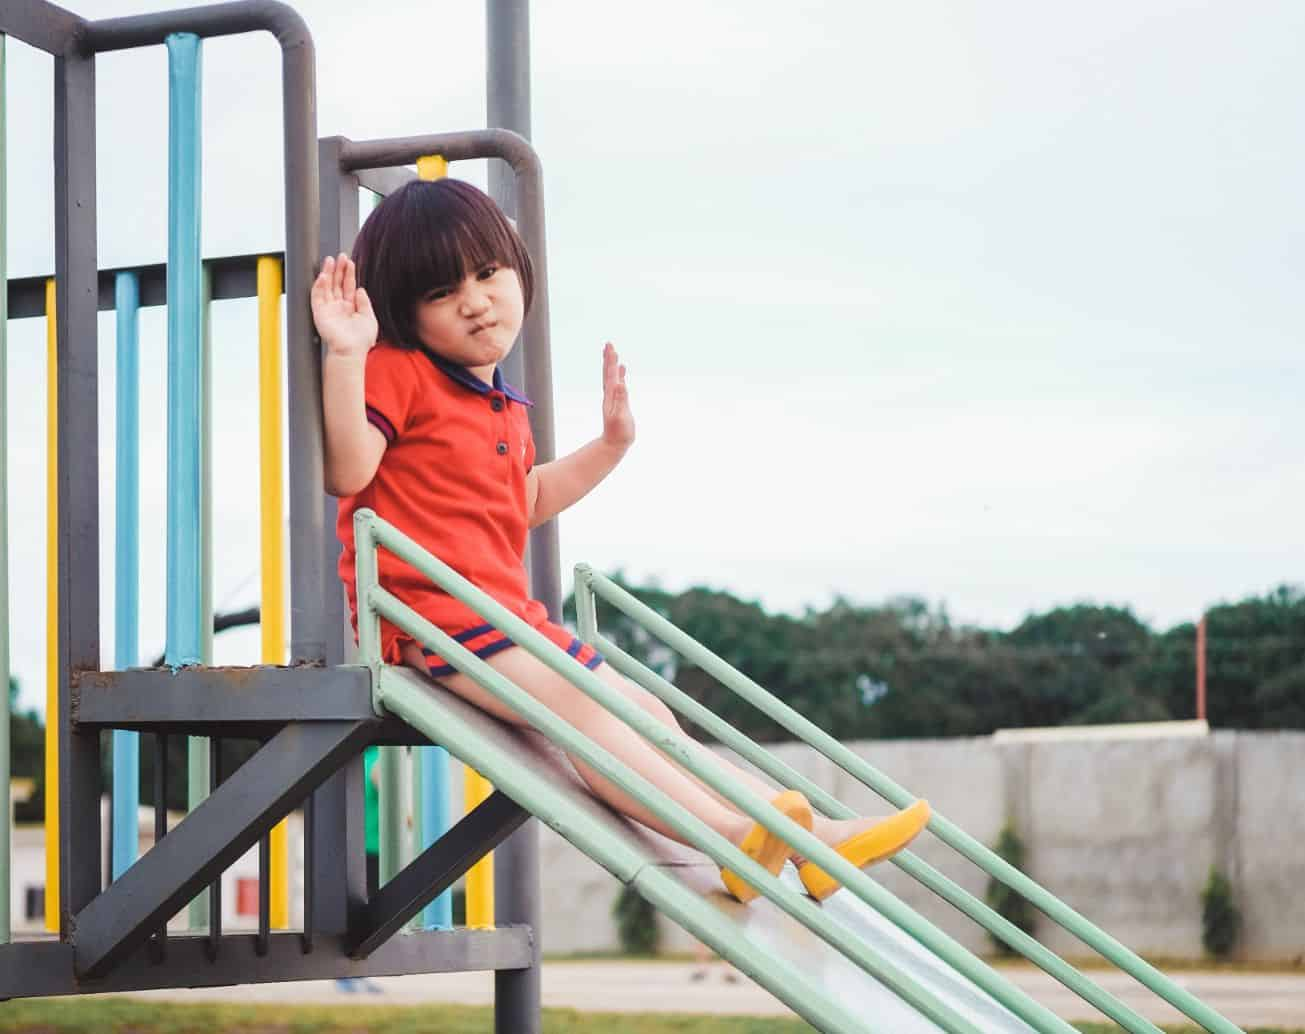 Why kids need to play outdoors